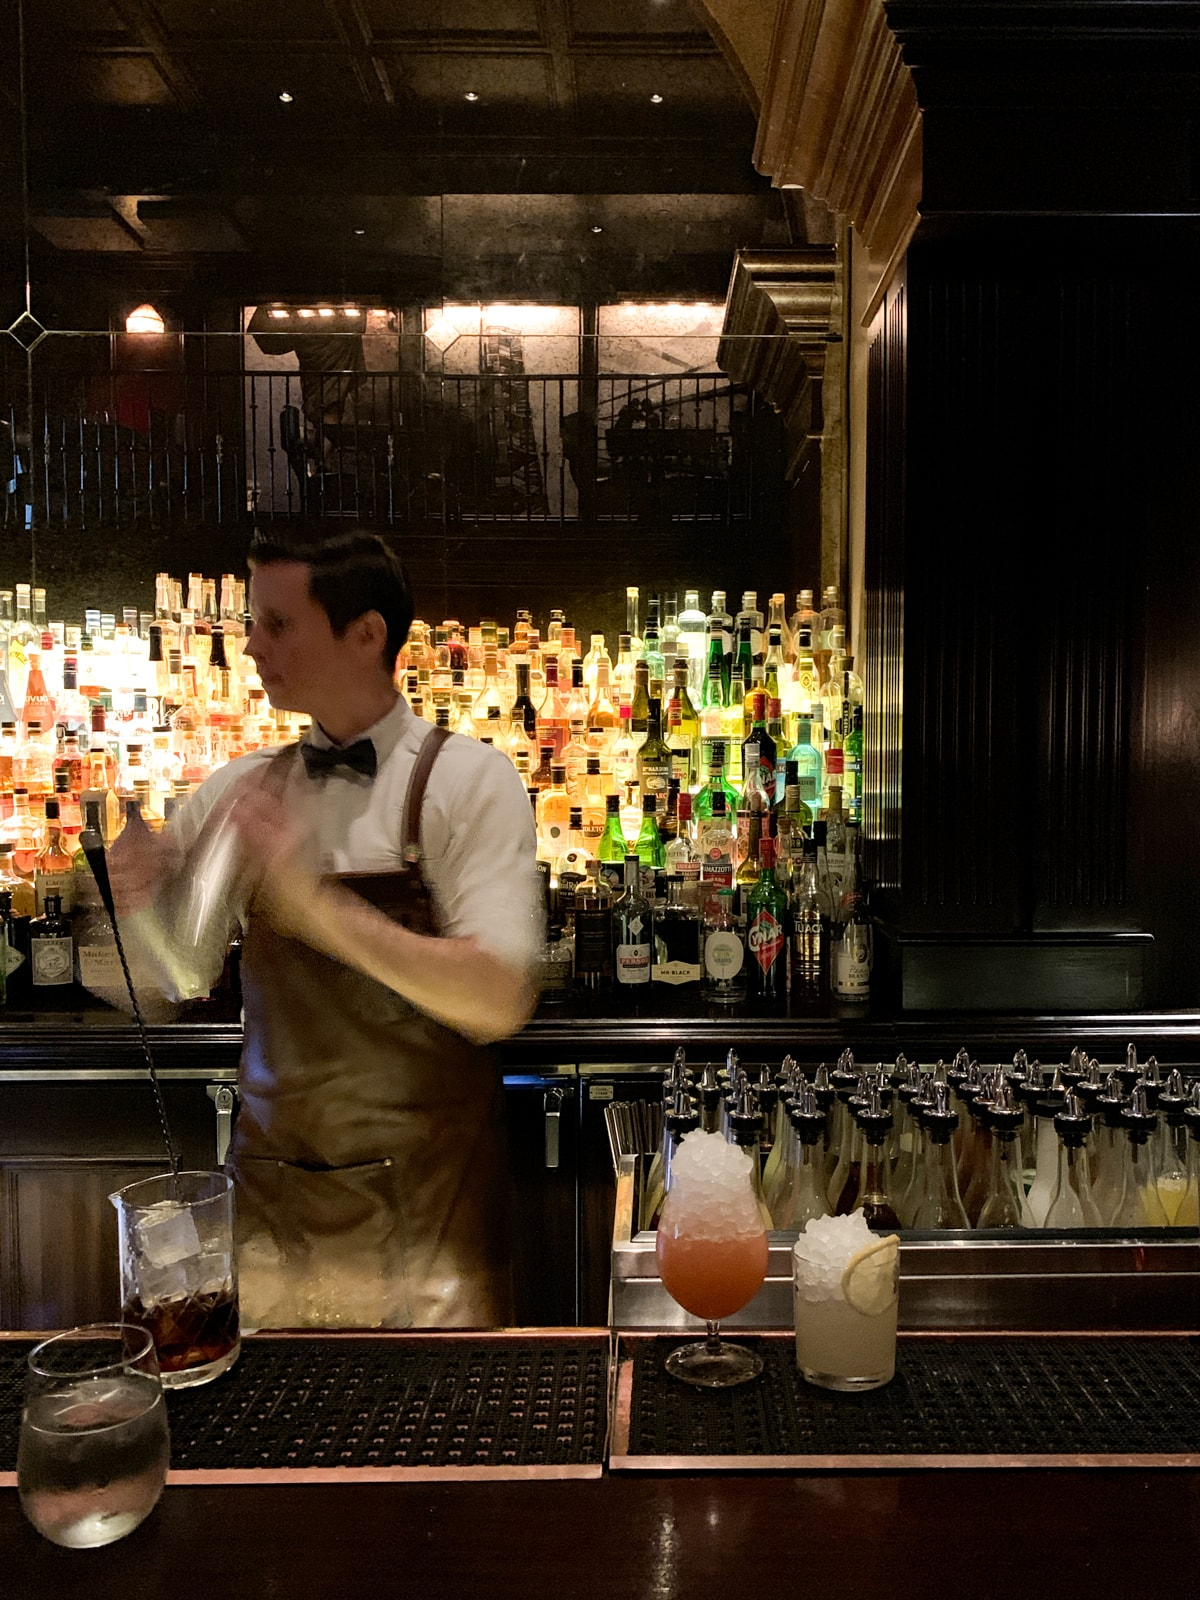 Mixing drinks at Nomad Bar in NYC